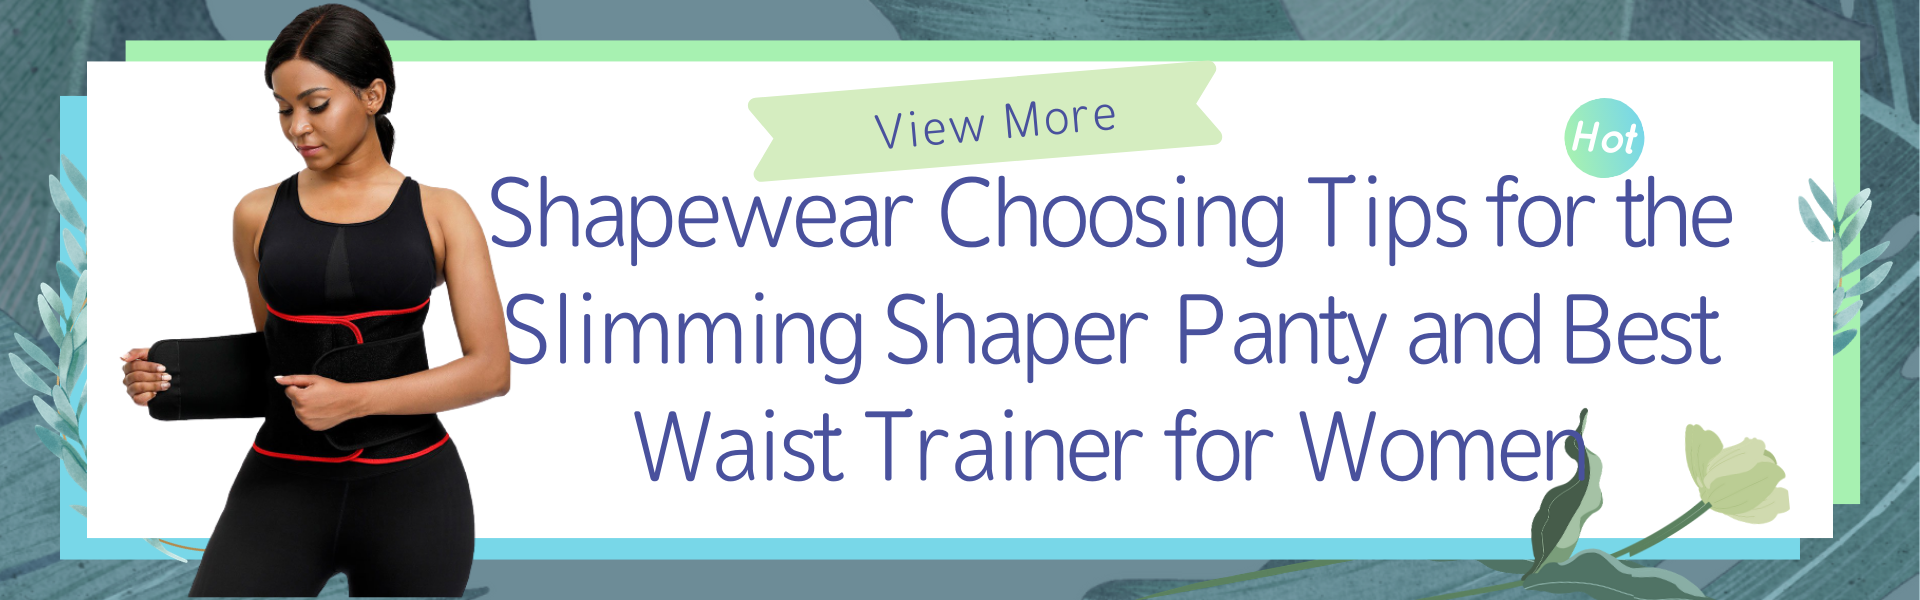 Shapewear Choosing Tips for the Slimming Shaper Panty and Best Waist Trainer for Women